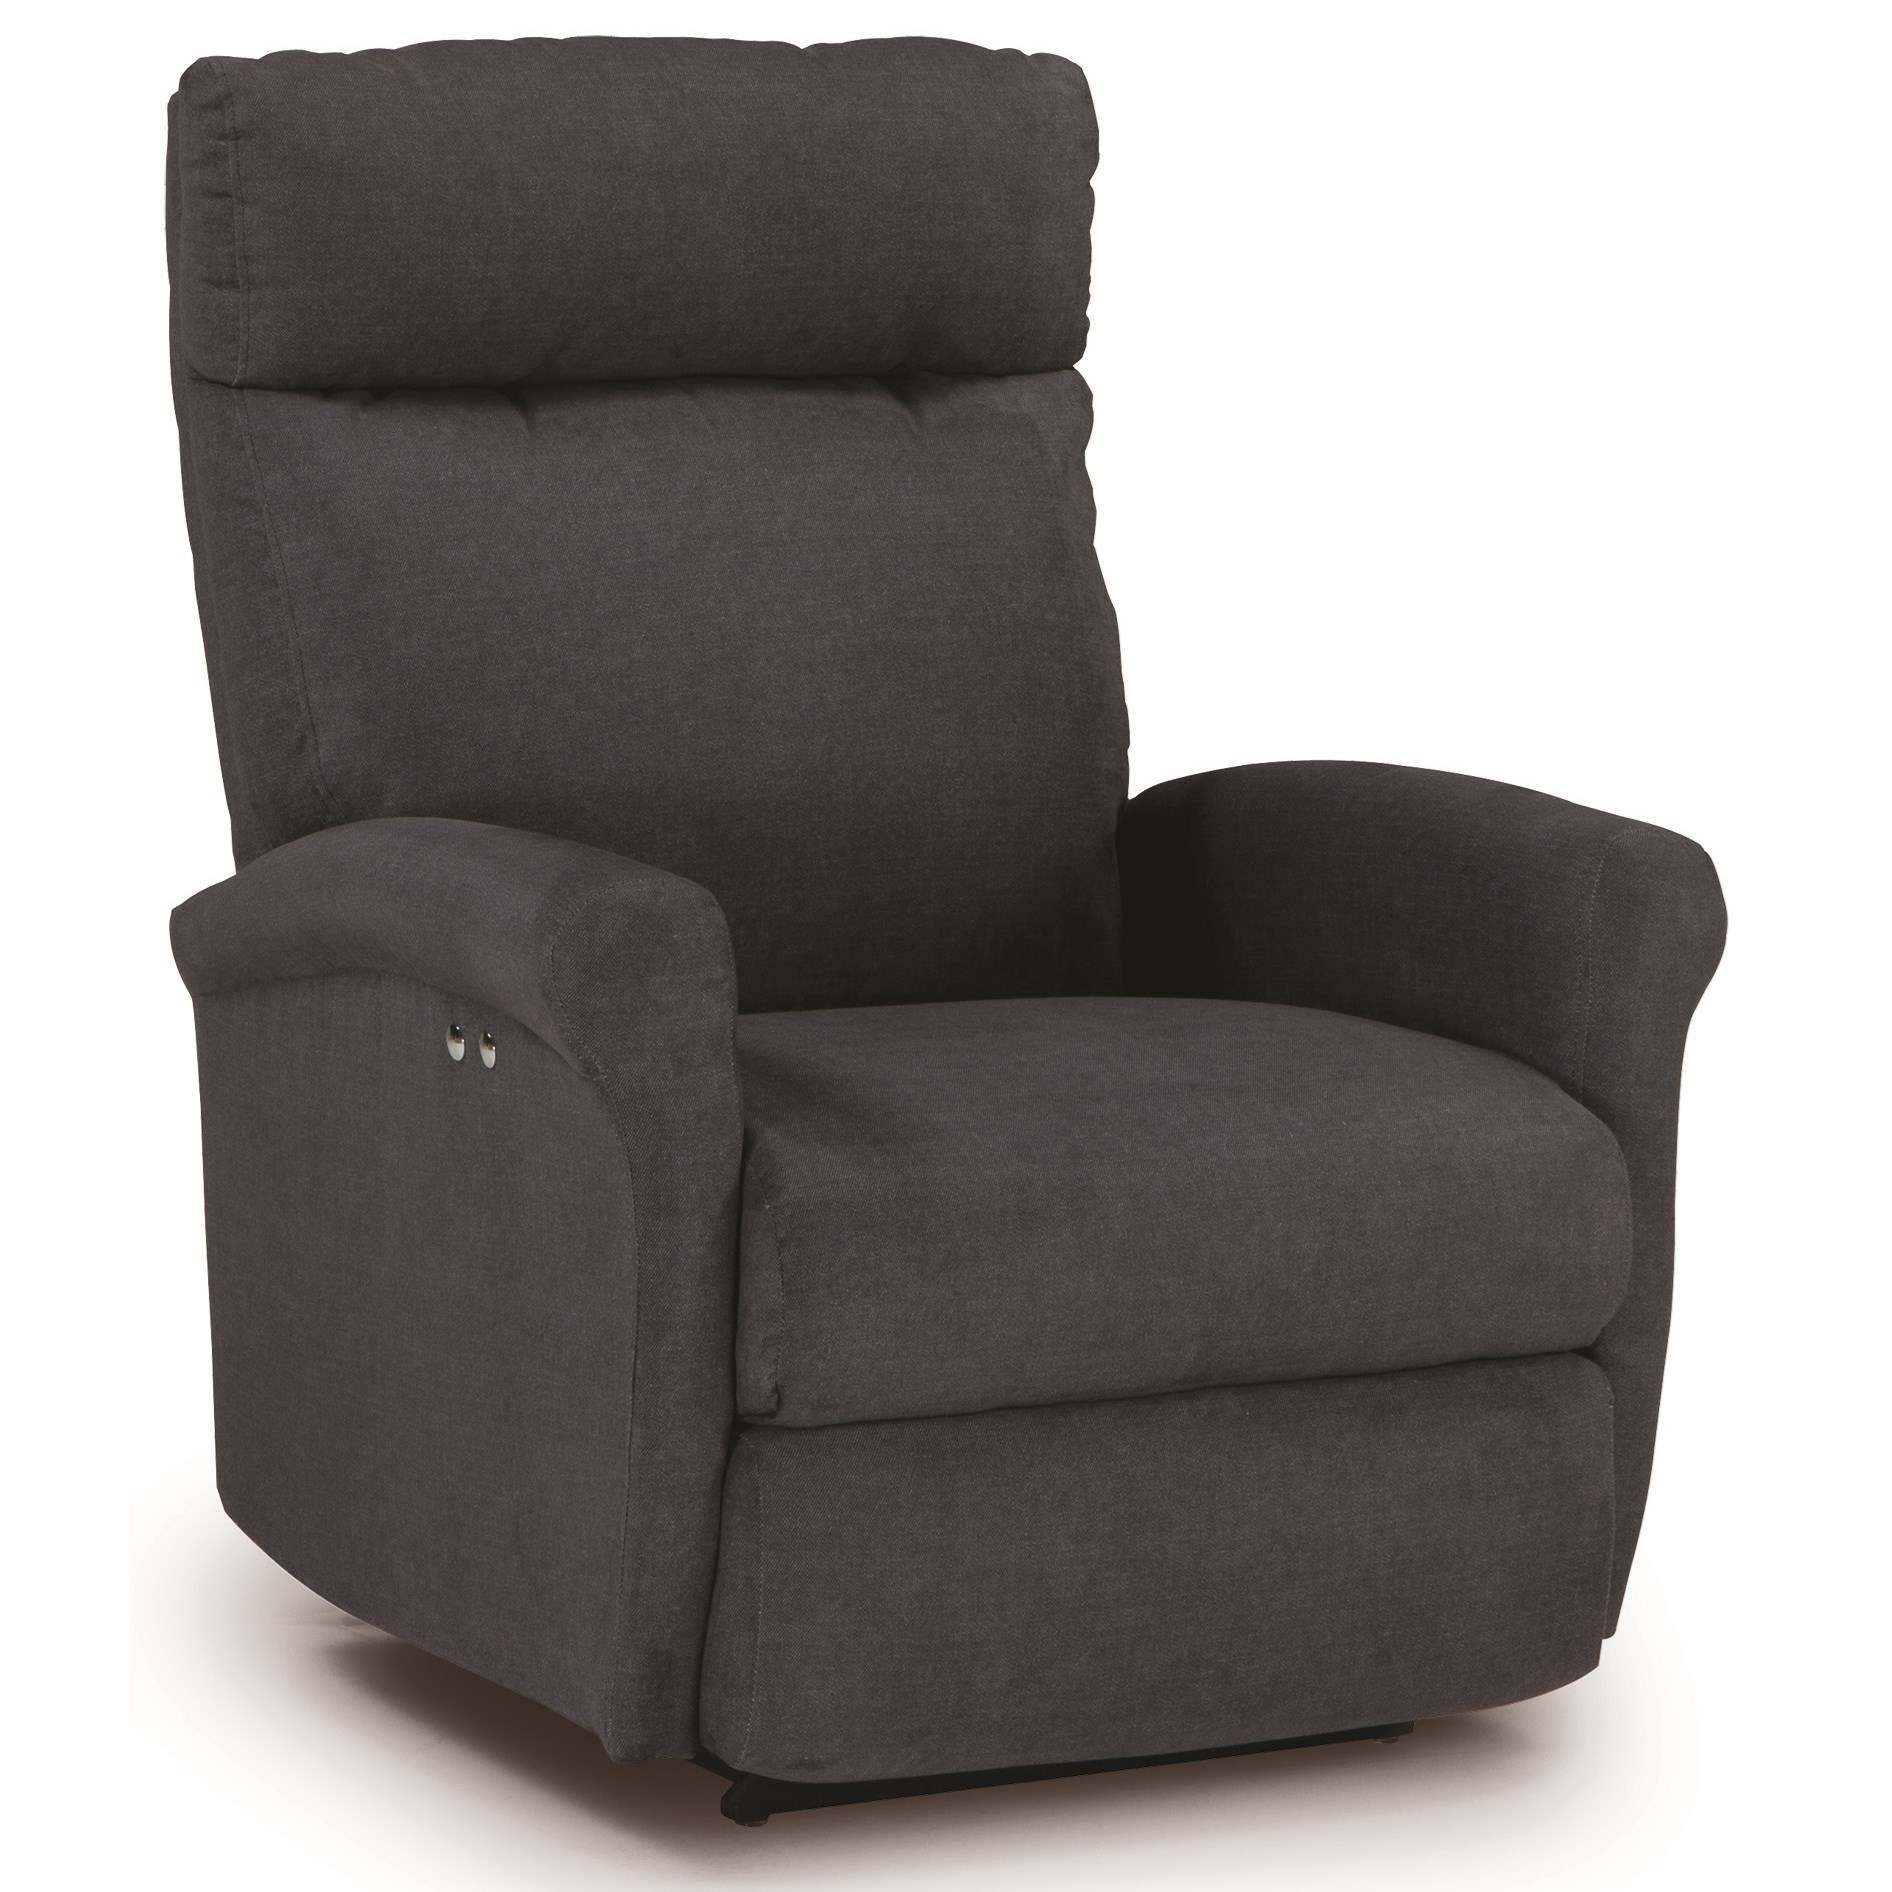 Best Home Furnishings Recliners - Petite Power Lift Recliner with Rolled Arms  sc 1 st  Wayside Furniture & Best Home Furnishings Recliners - Petite Power Lift Recliner with ... islam-shia.org